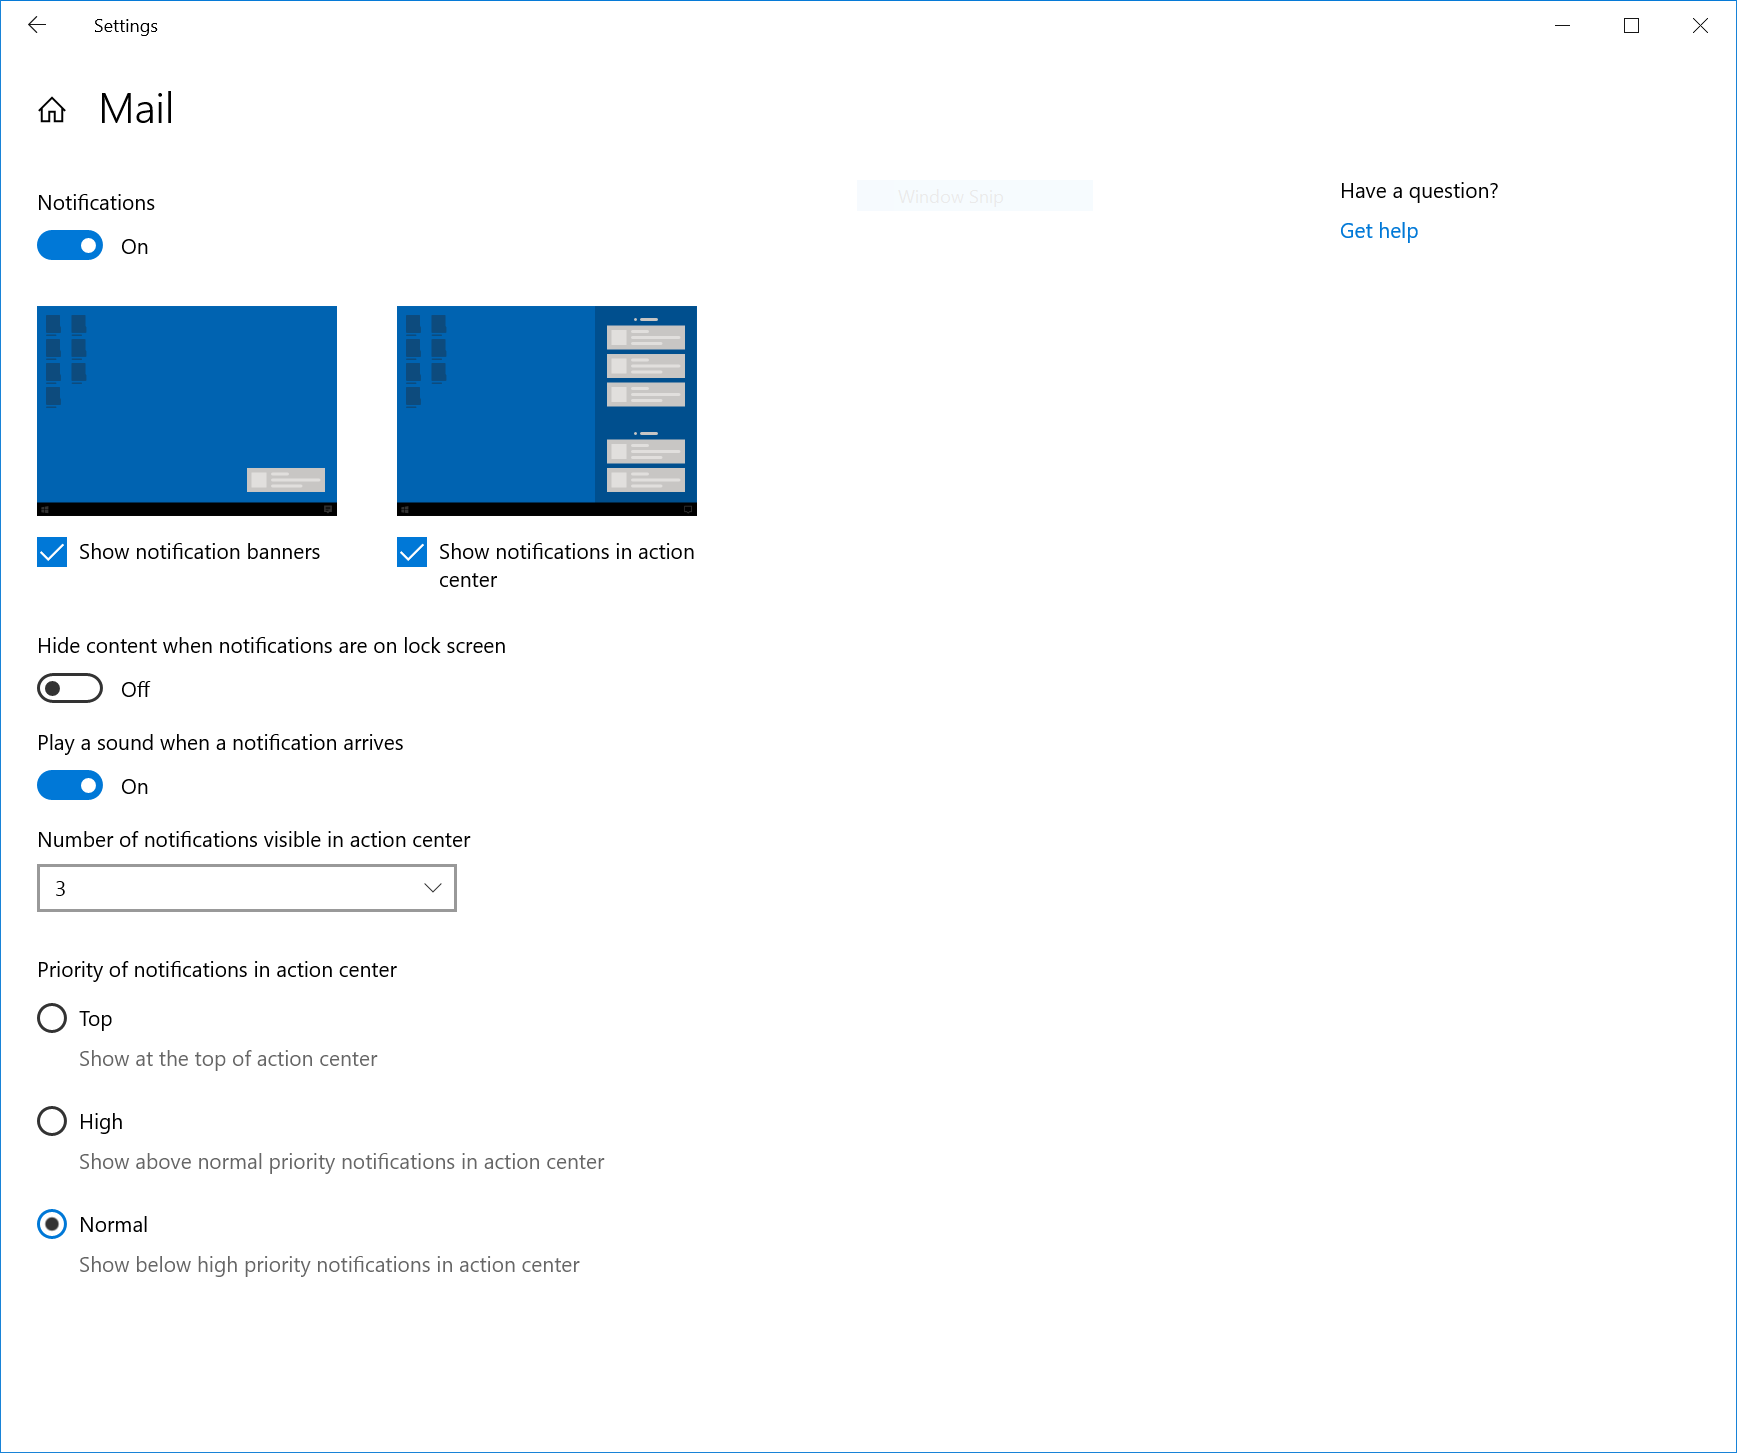 Ayudas para la configuración de notificaciones en Windows 10 19H2